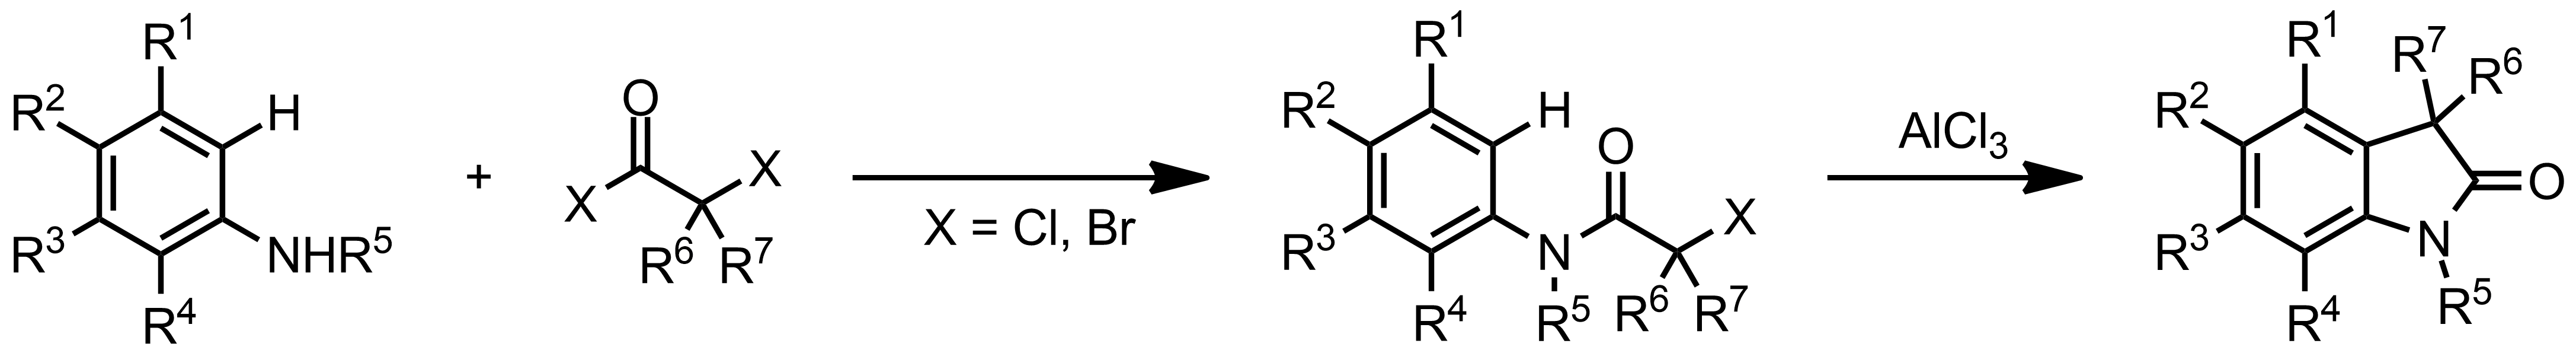 Schematic representation of the Stollé Synthesis.